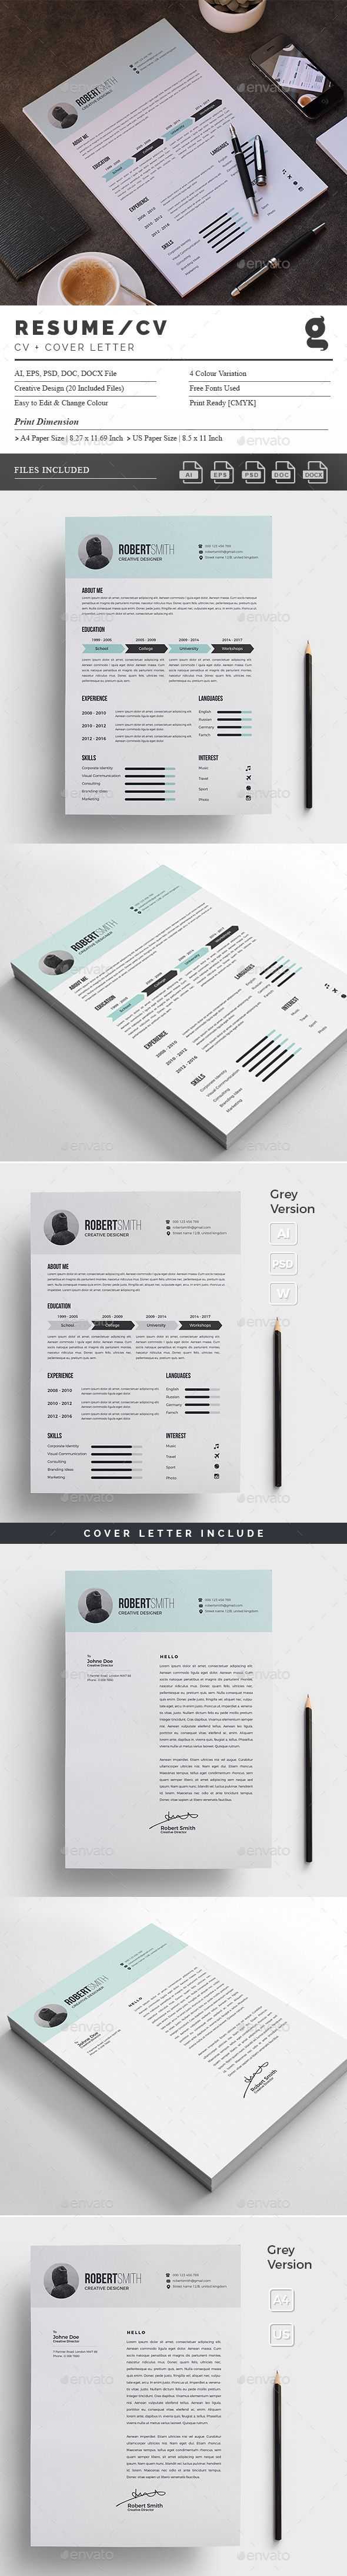 Buy Resume Templates - Premium Professional Resume Templates - LimeResumes